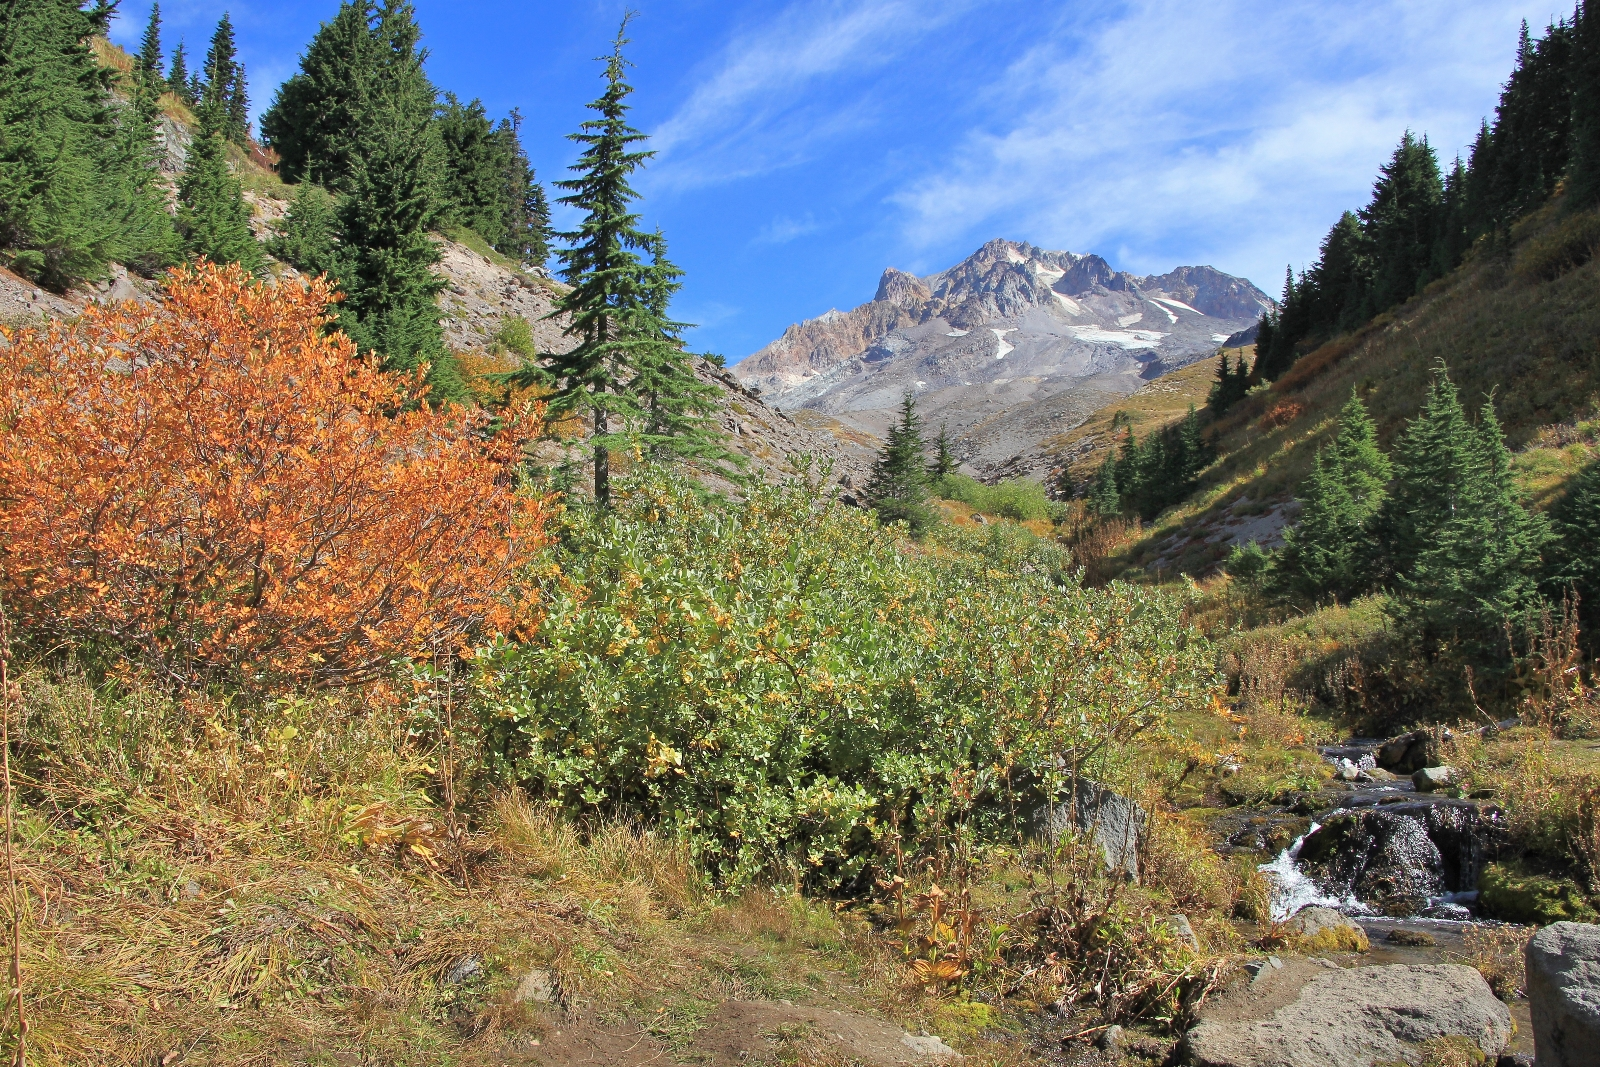 09-13-15 Mt. Hood Paradise Ridge hike (101)